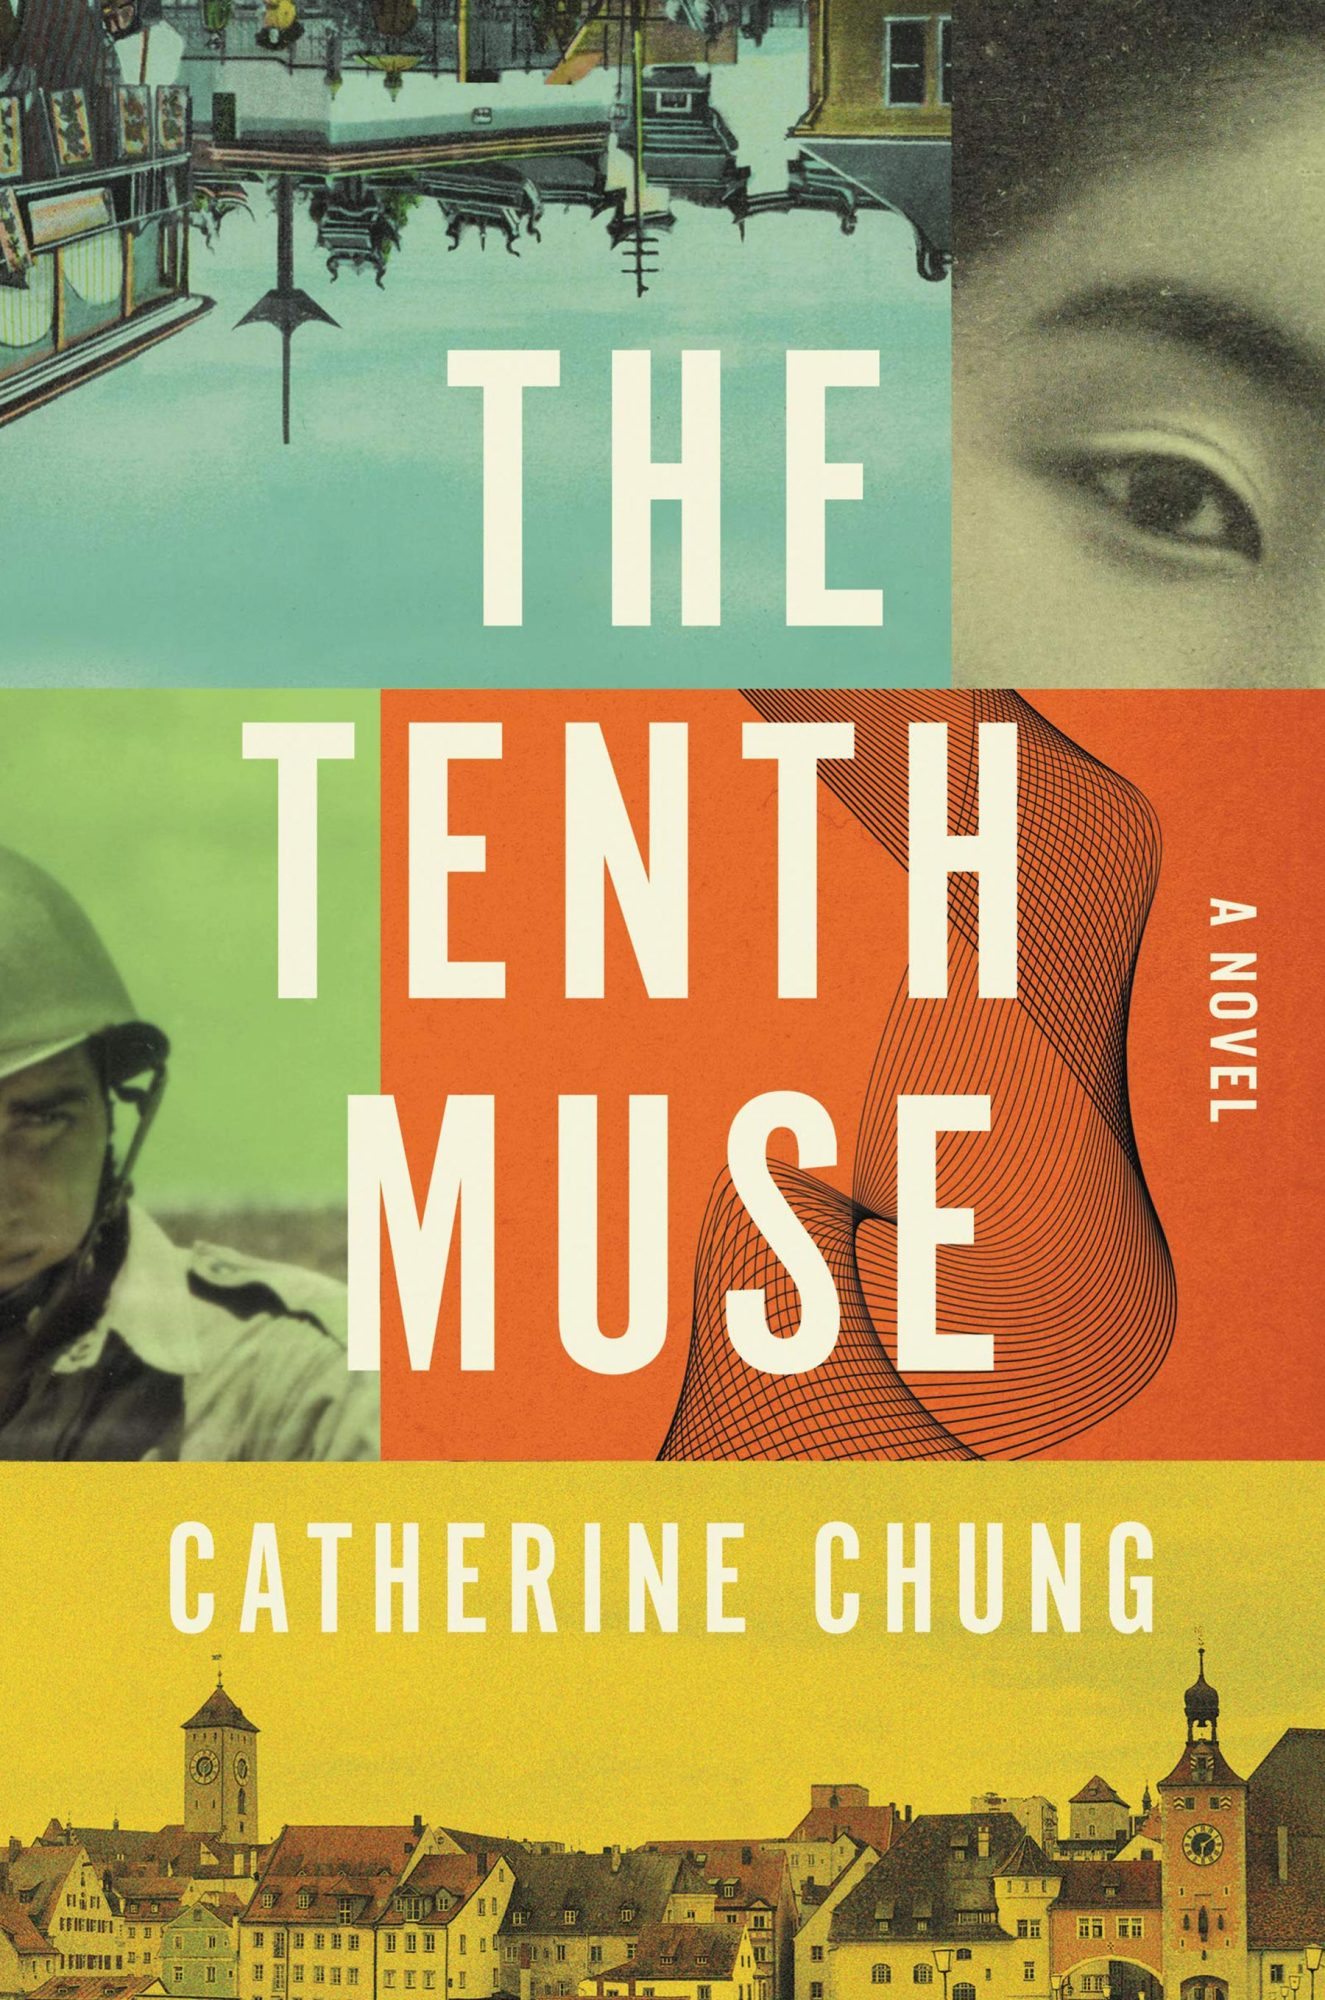 Catherine Chung, The Tenth MusePublisher: Ecco